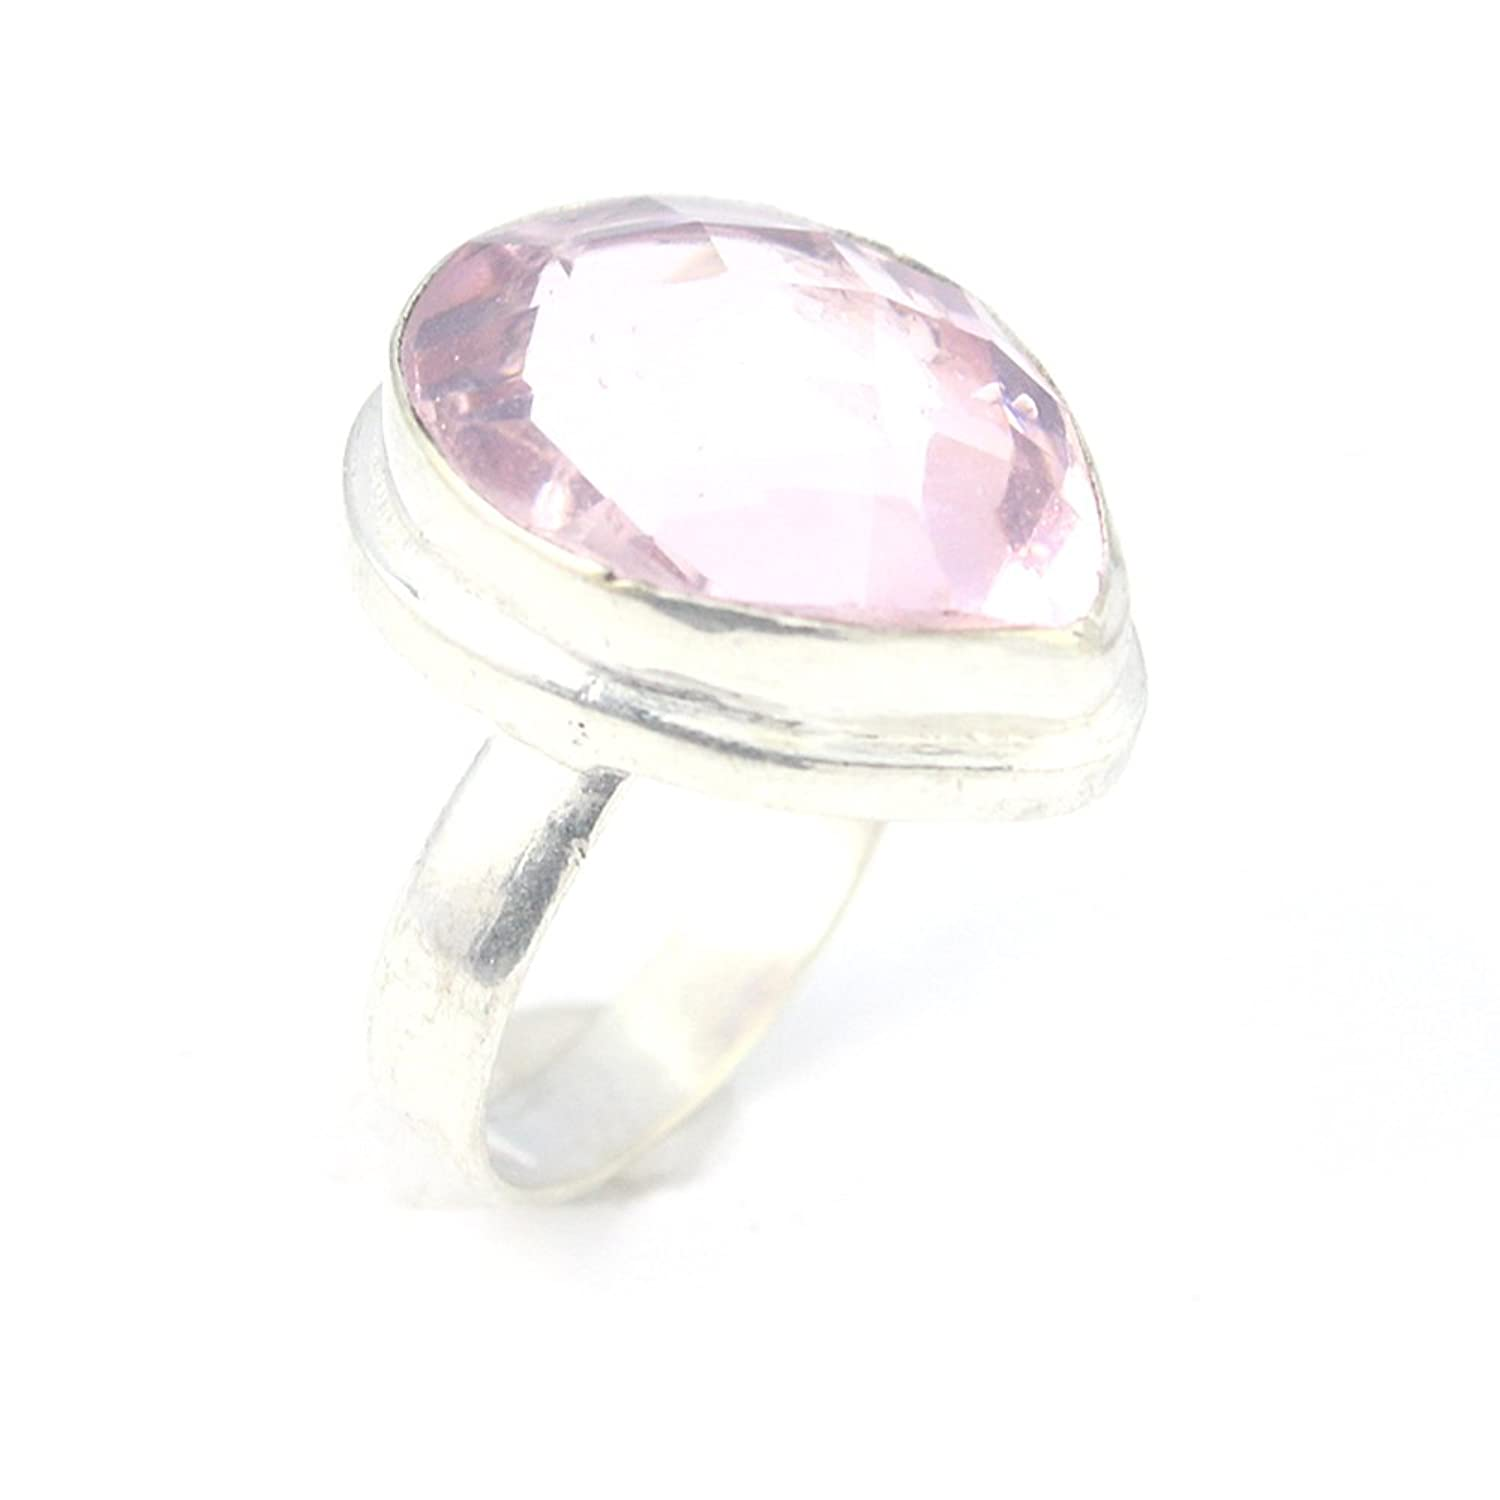 HIGH FINISH PINK TOPAZ FASHION JEWELRY .925 SILVER PLATED RING 8 S24037